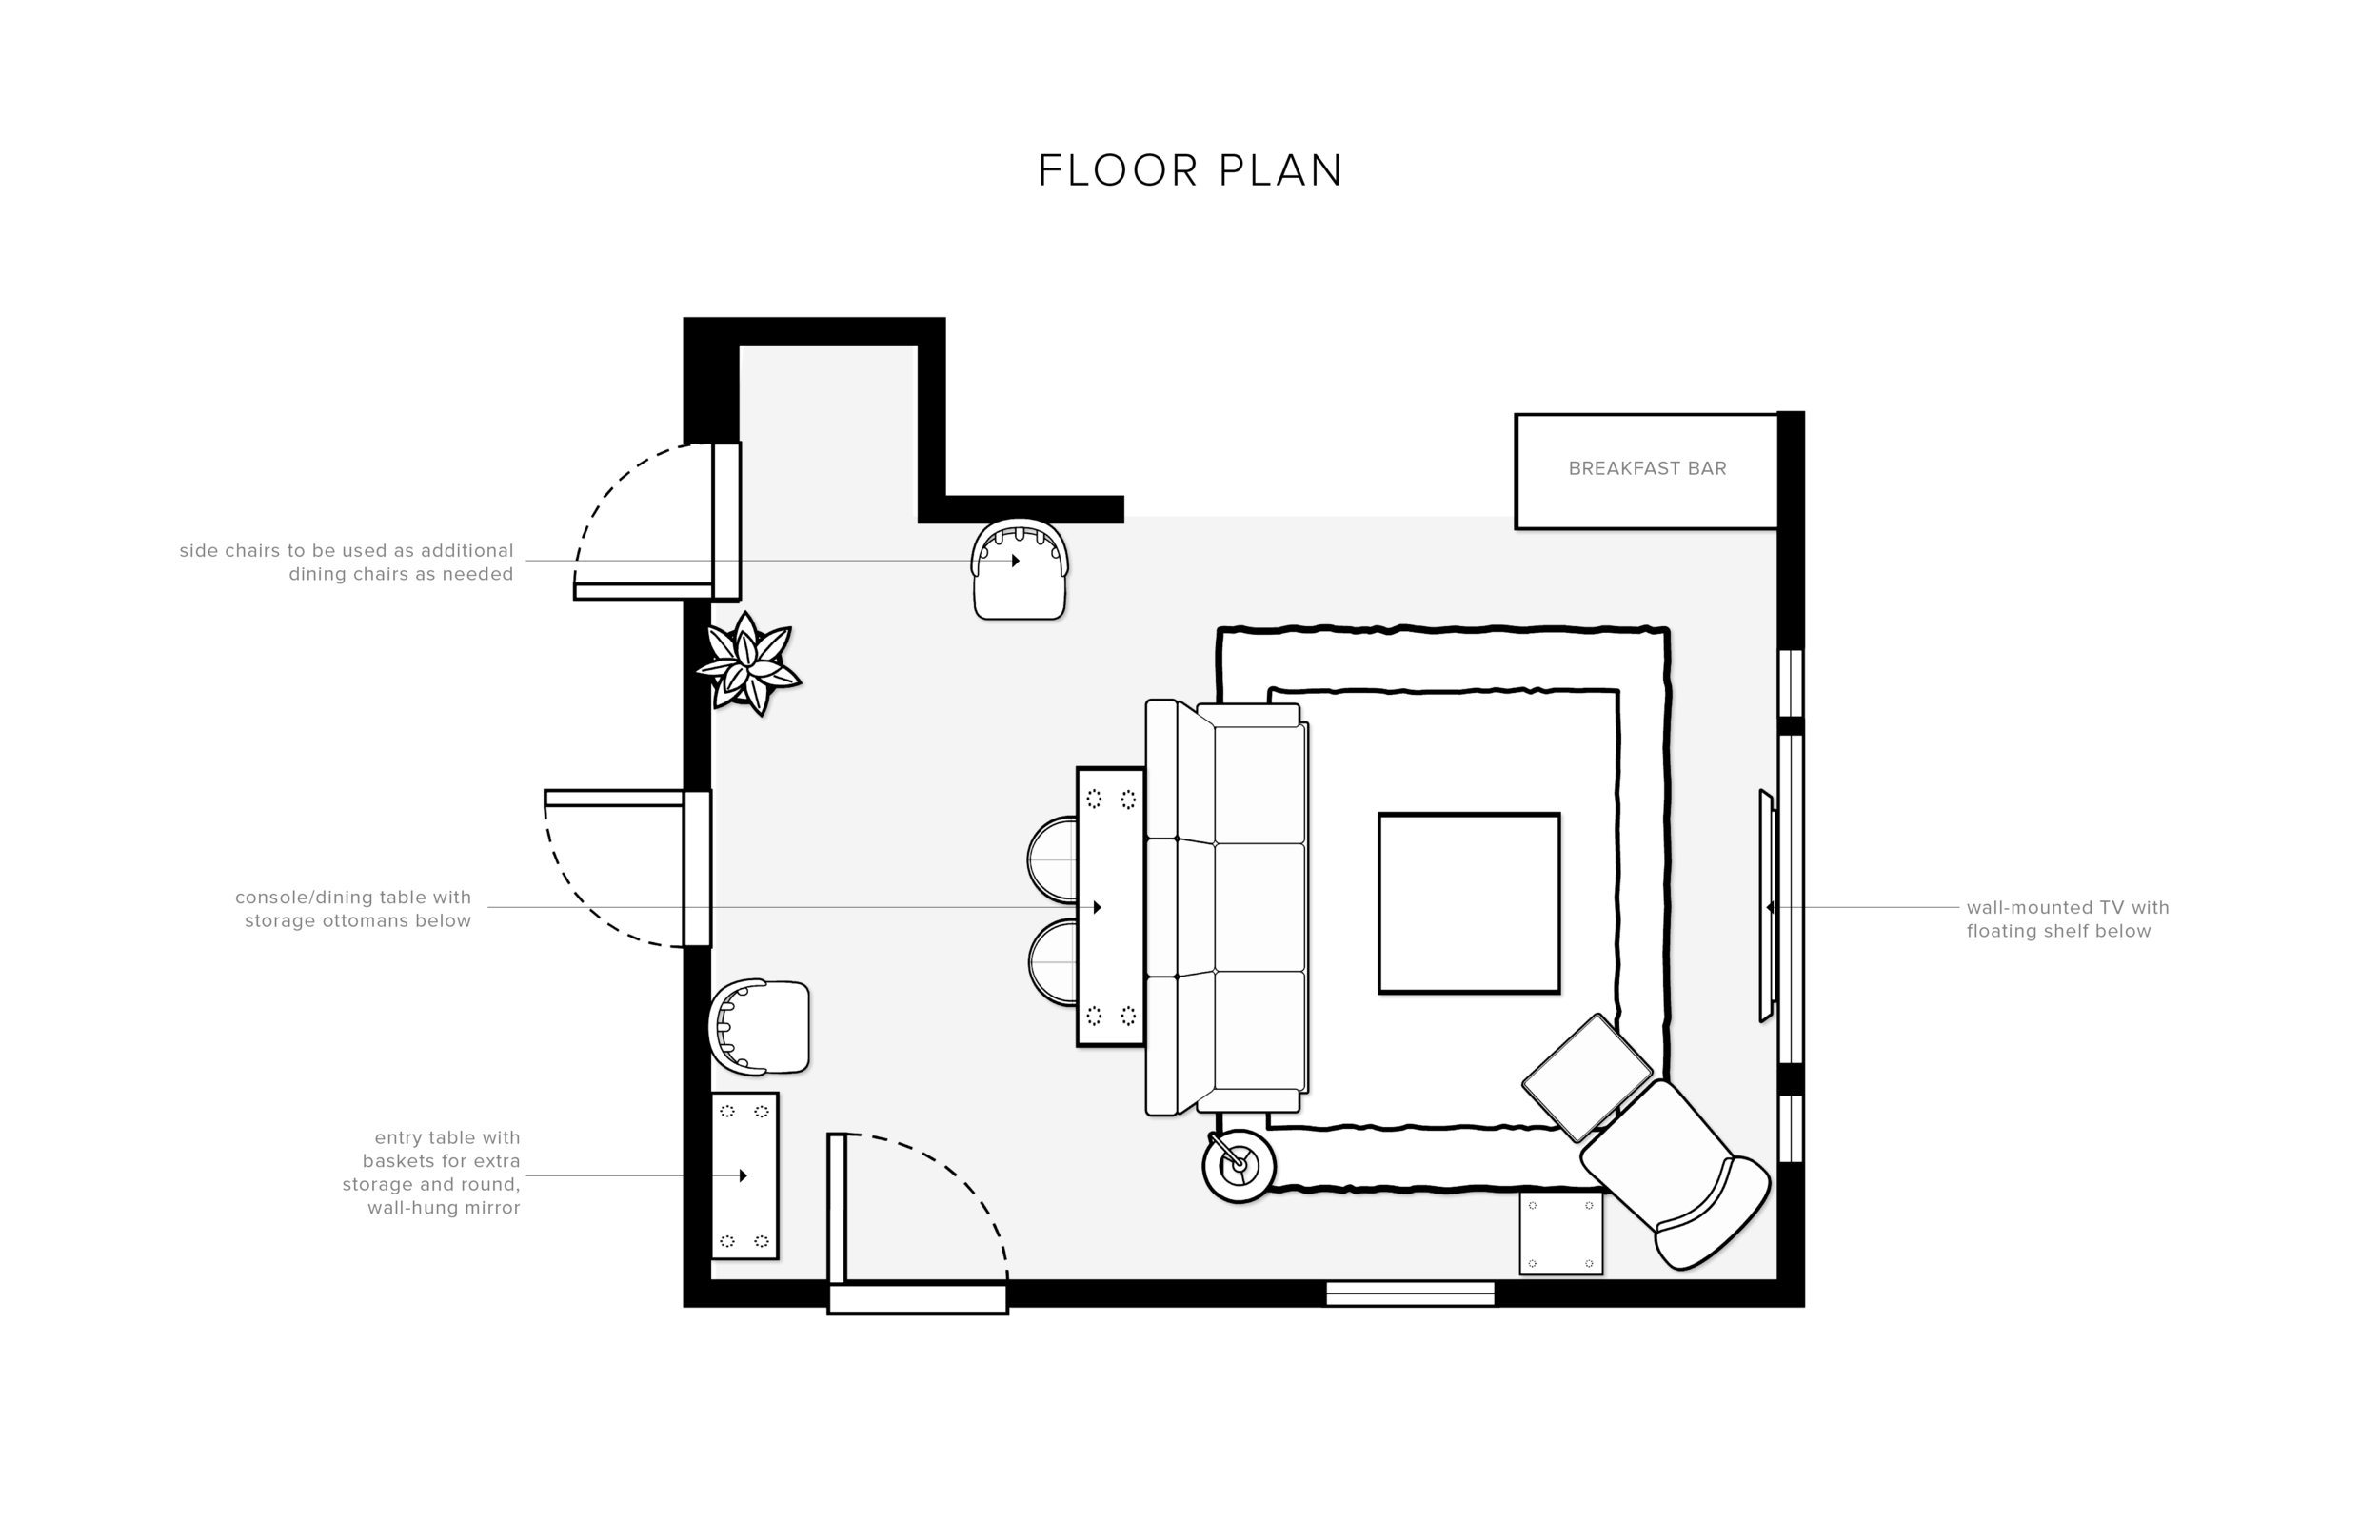 AS Final Floor Plan.jpg